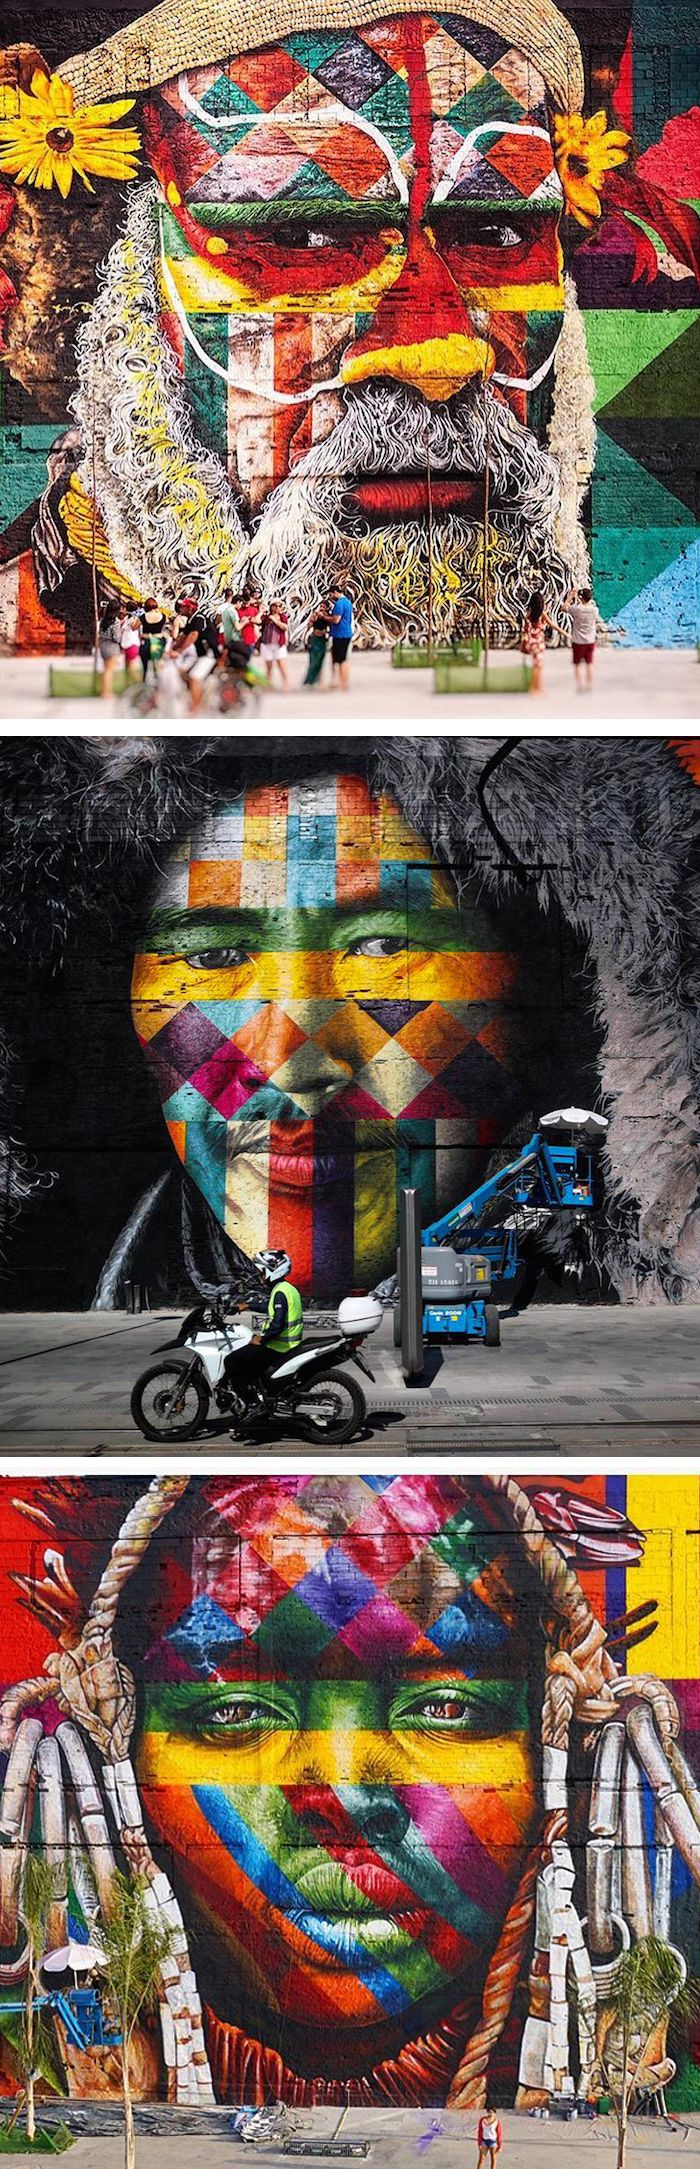 Street art // colorful murals // murals // geometric street art